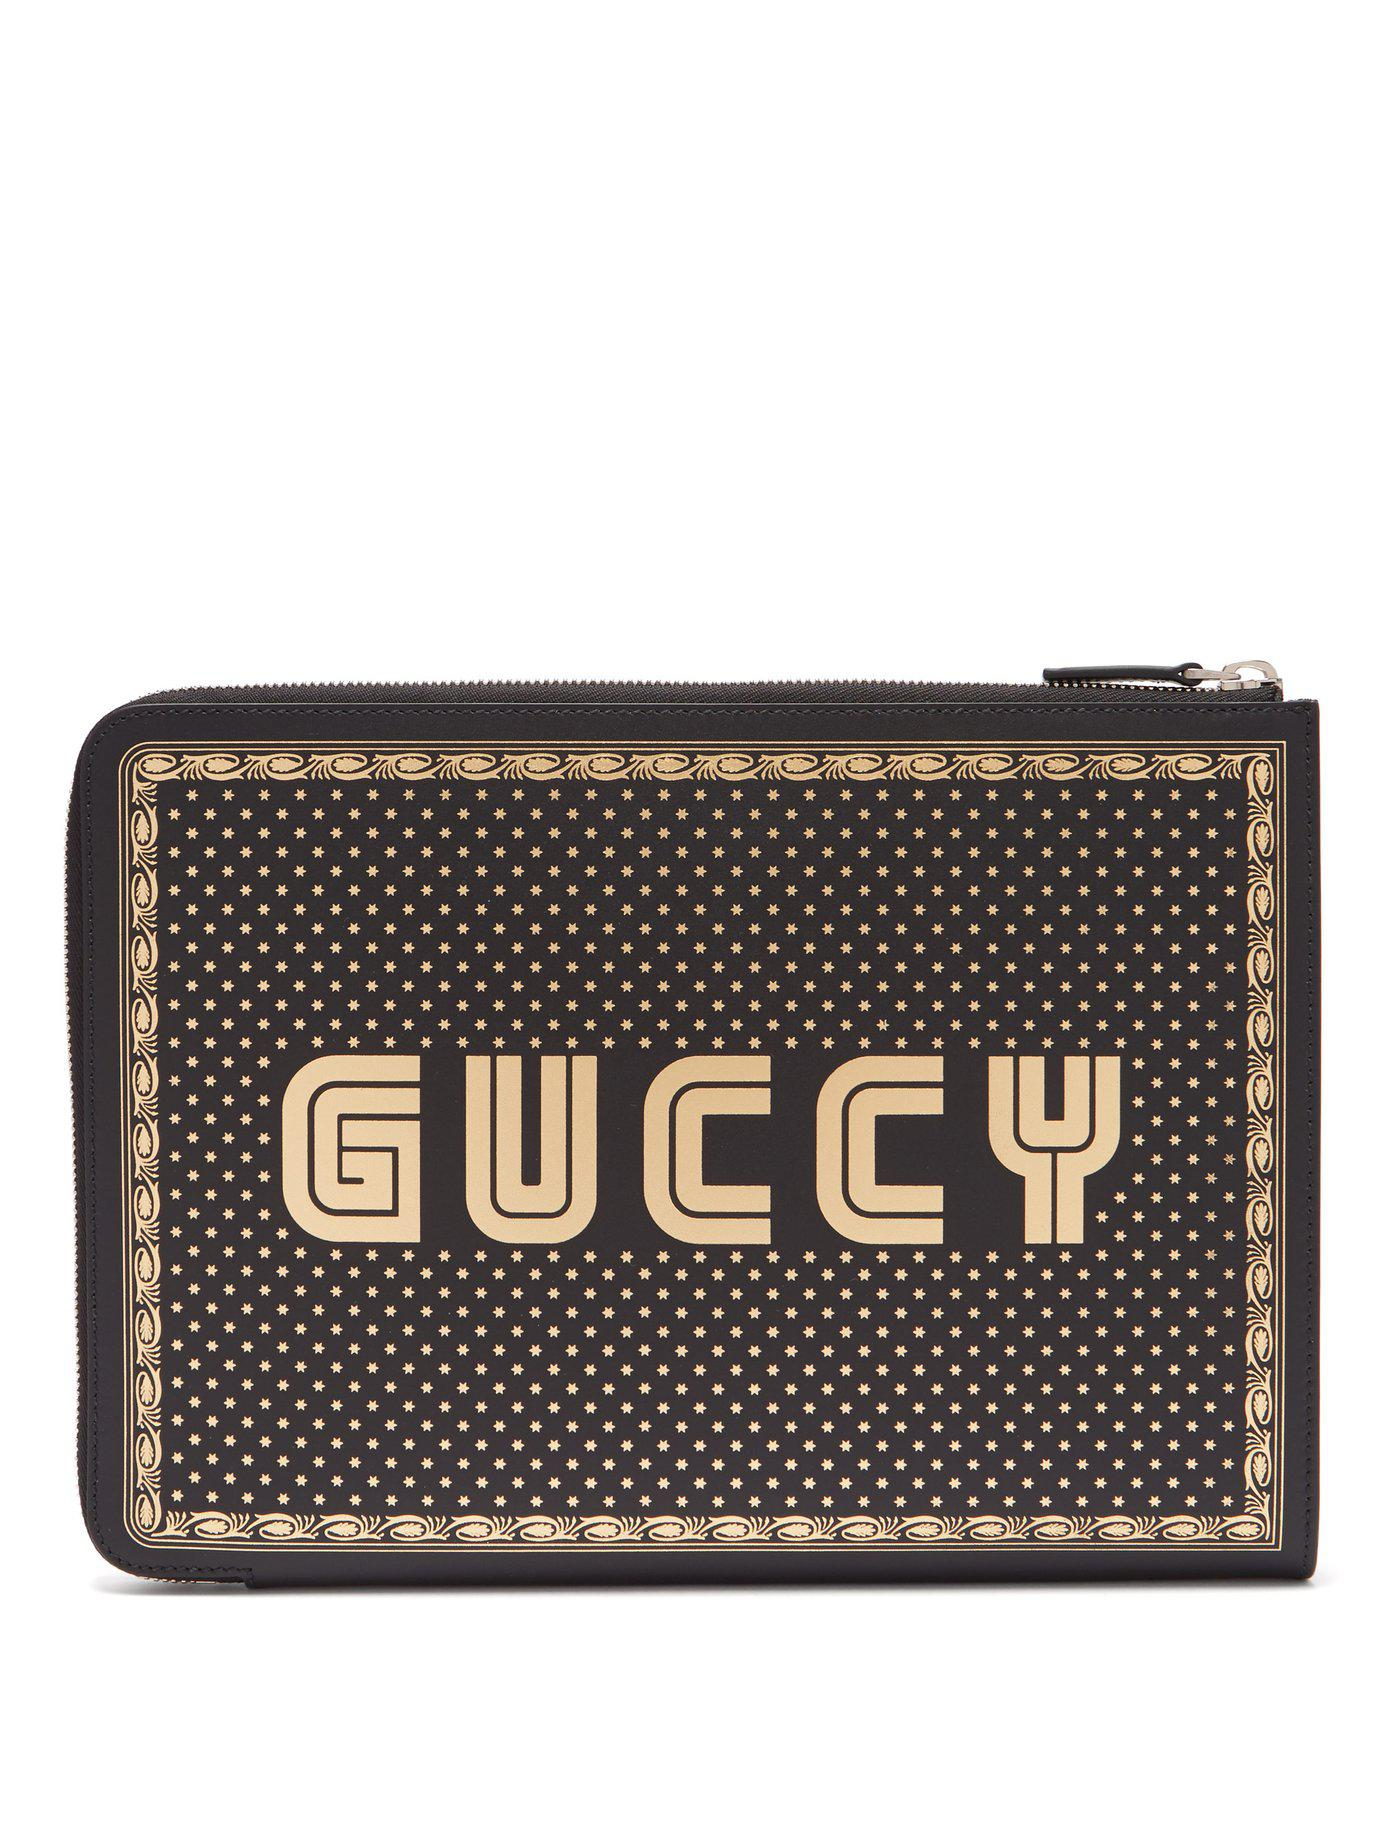 6085f0fa81f Lyst - Gucci Magnetismo Print Leather Pouch in Black for Men - Save 9%